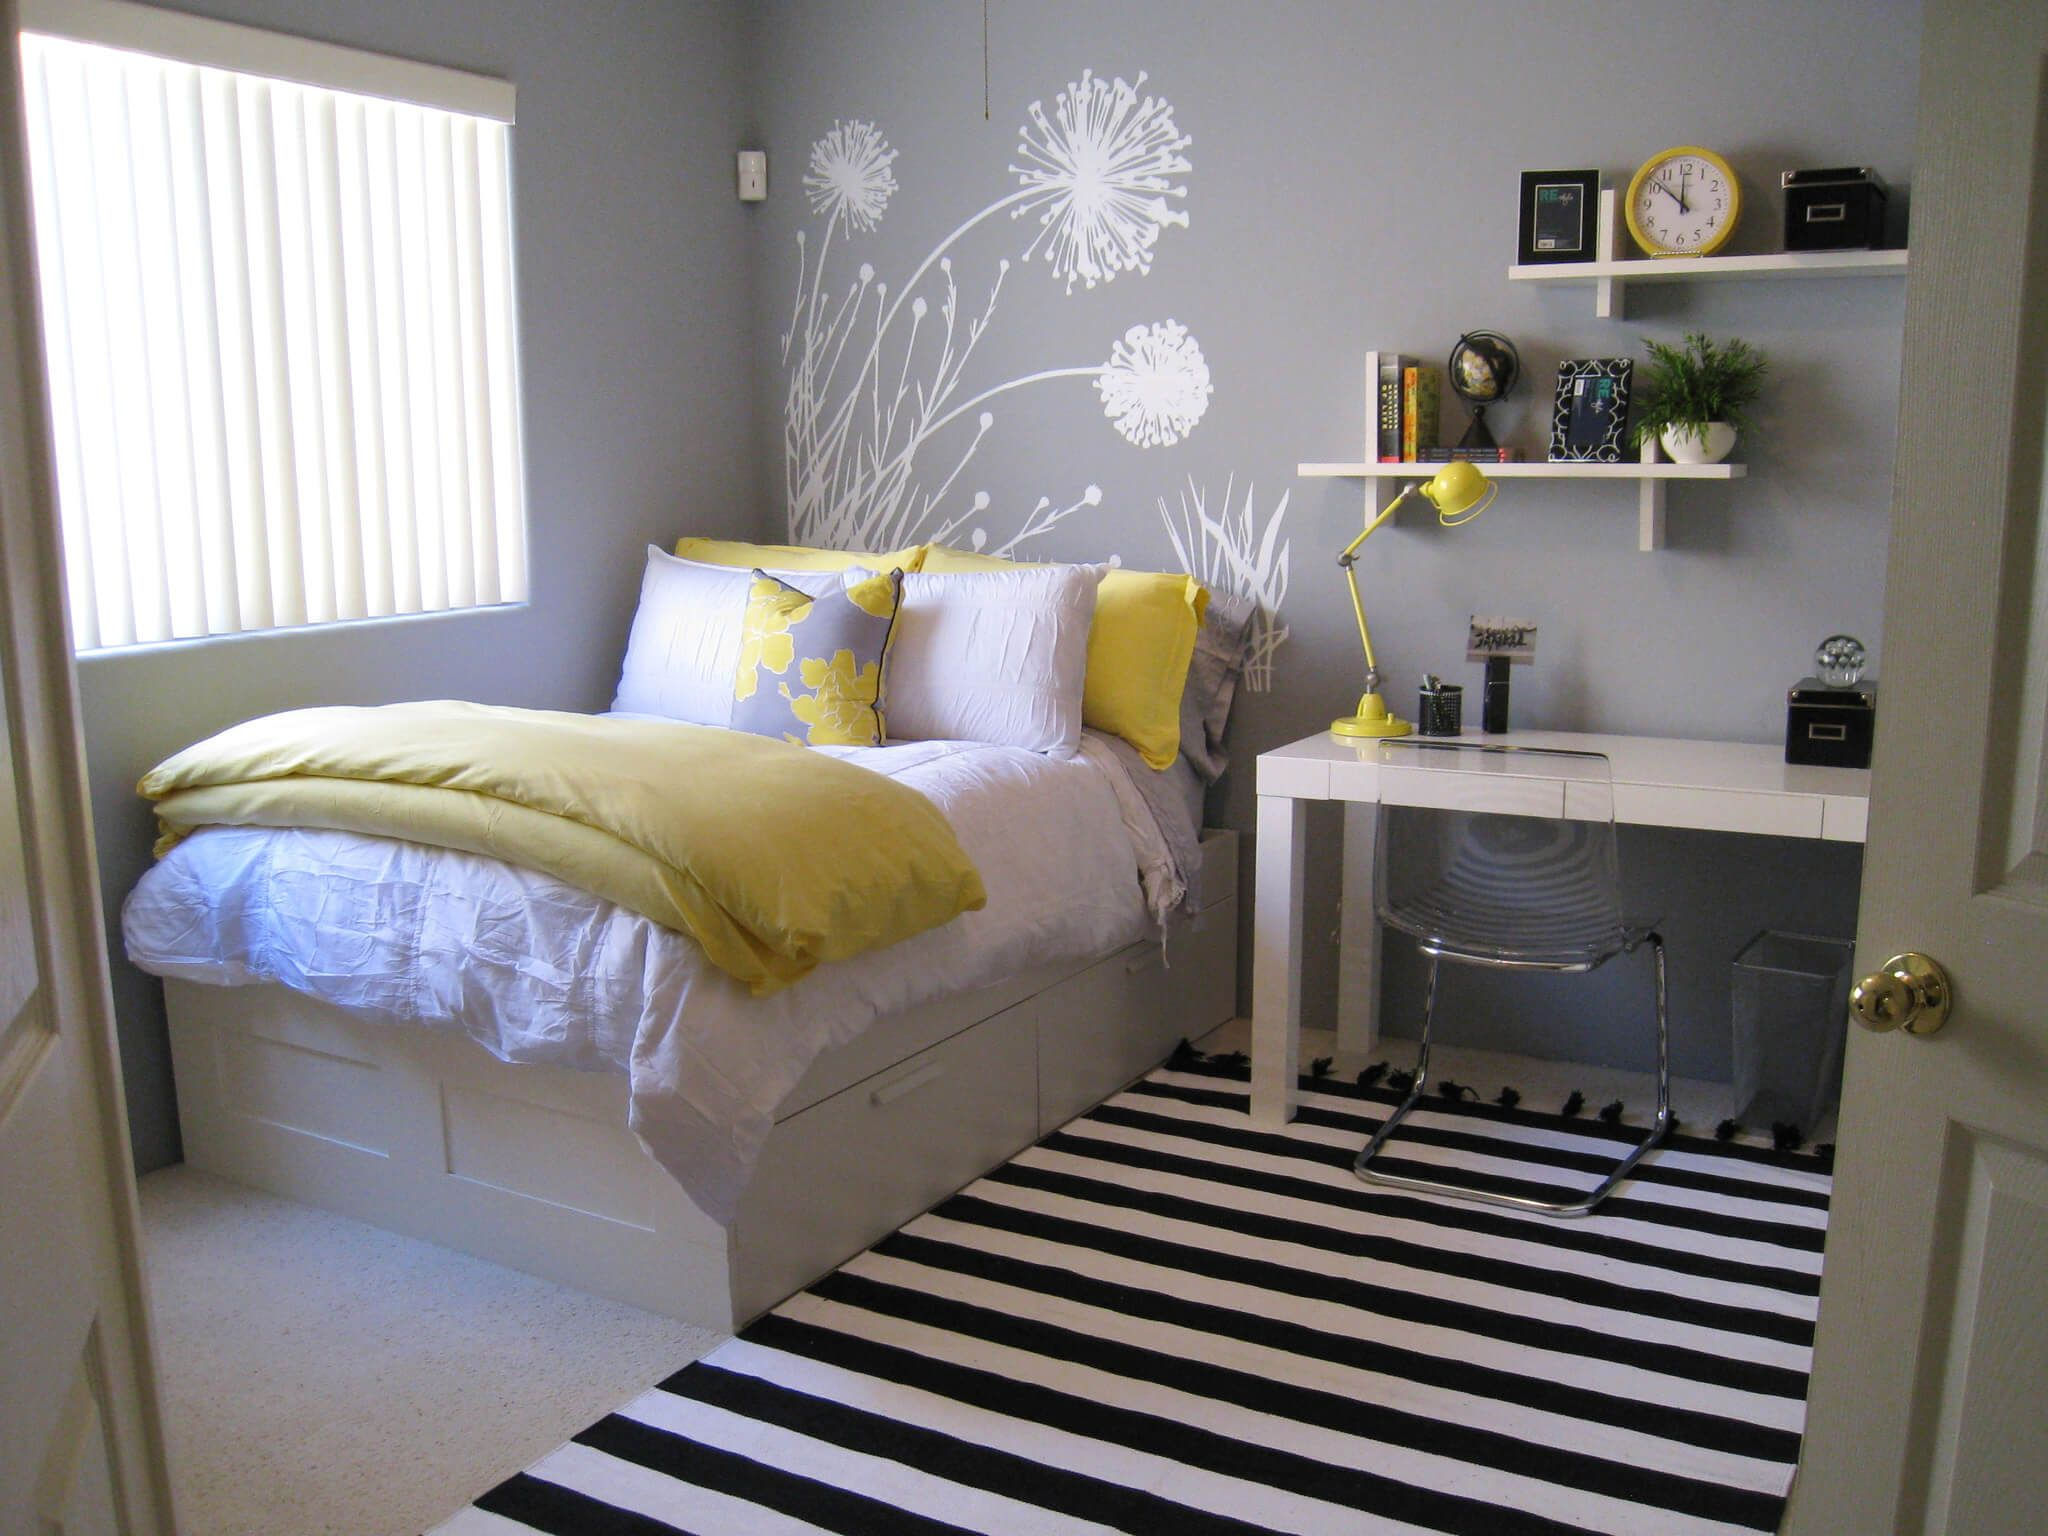 Bedroom pictures and ideas - Bedroom Small Bedroom Ideas Ikea 16 Bedroom Layout Ideas For Square Rooms Cool Bedroom Ideas For Small Rooms Cheap Bedroom Makeover Simple Bedroom